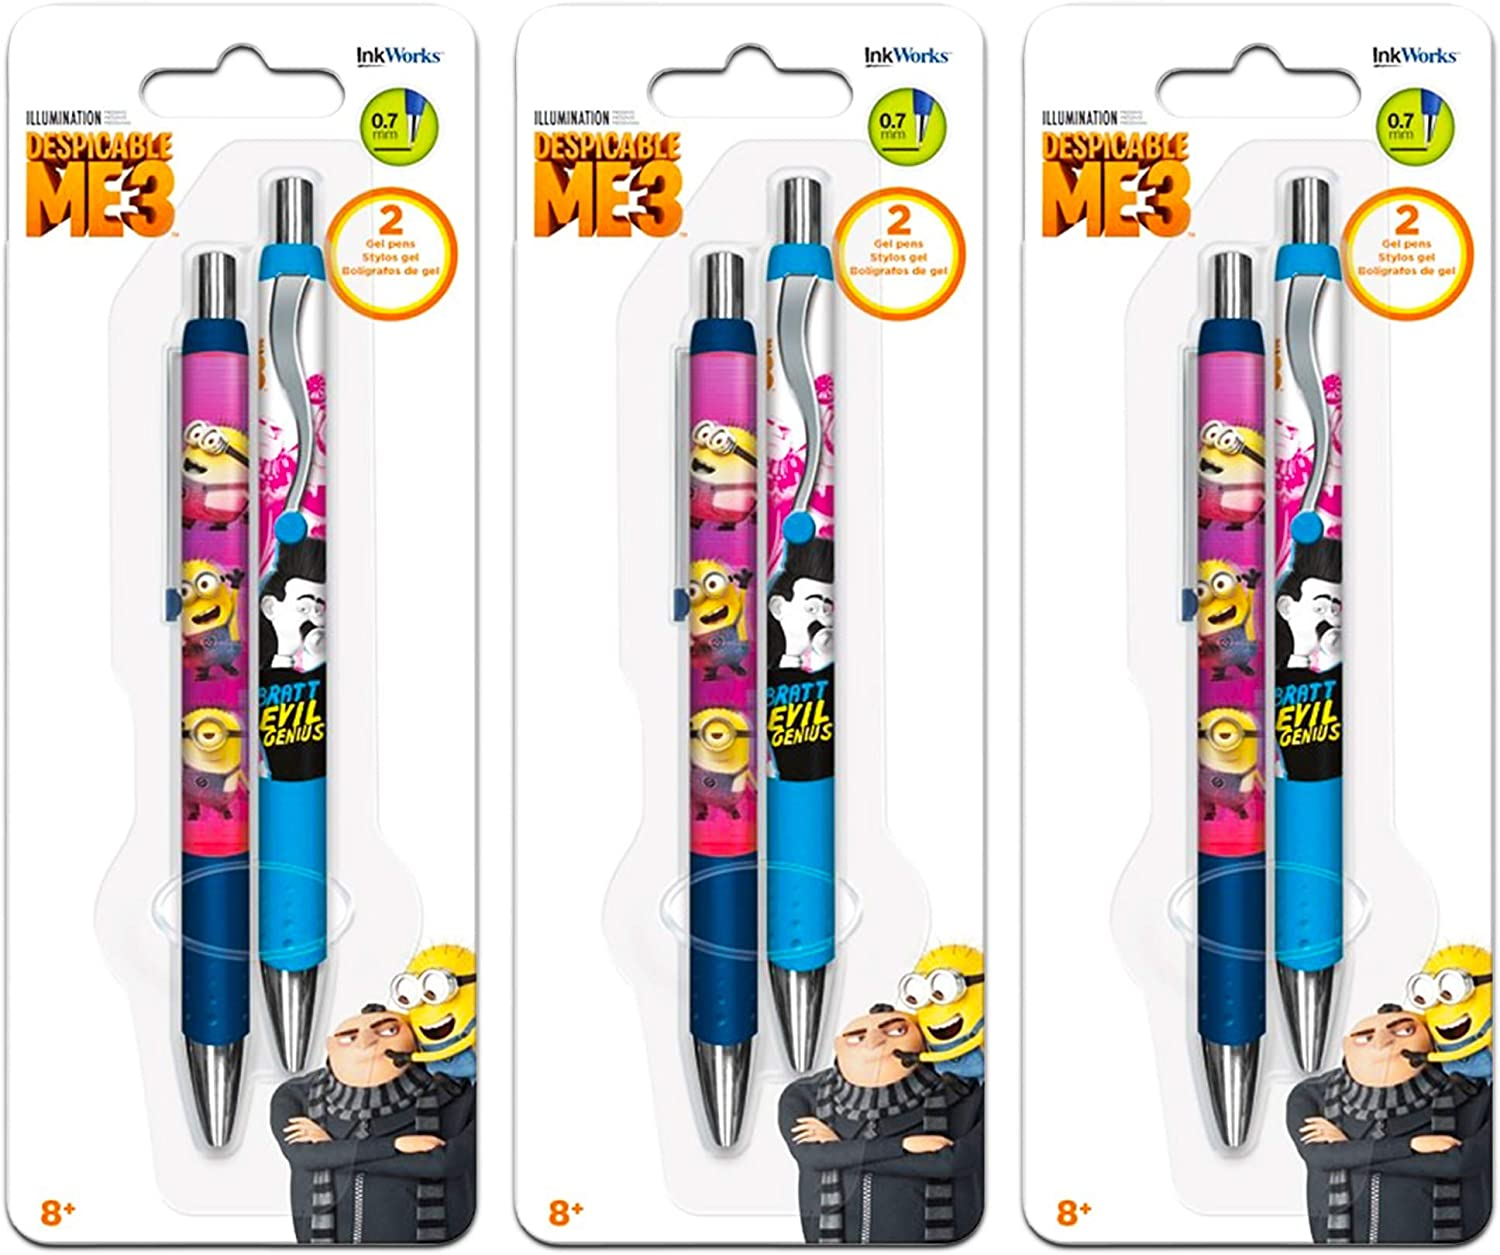 Despicable Me Pens Value Bulk Pack - 6 Despicable Me Gel Pens (Despicable Me School Supplies, Office Supplies)